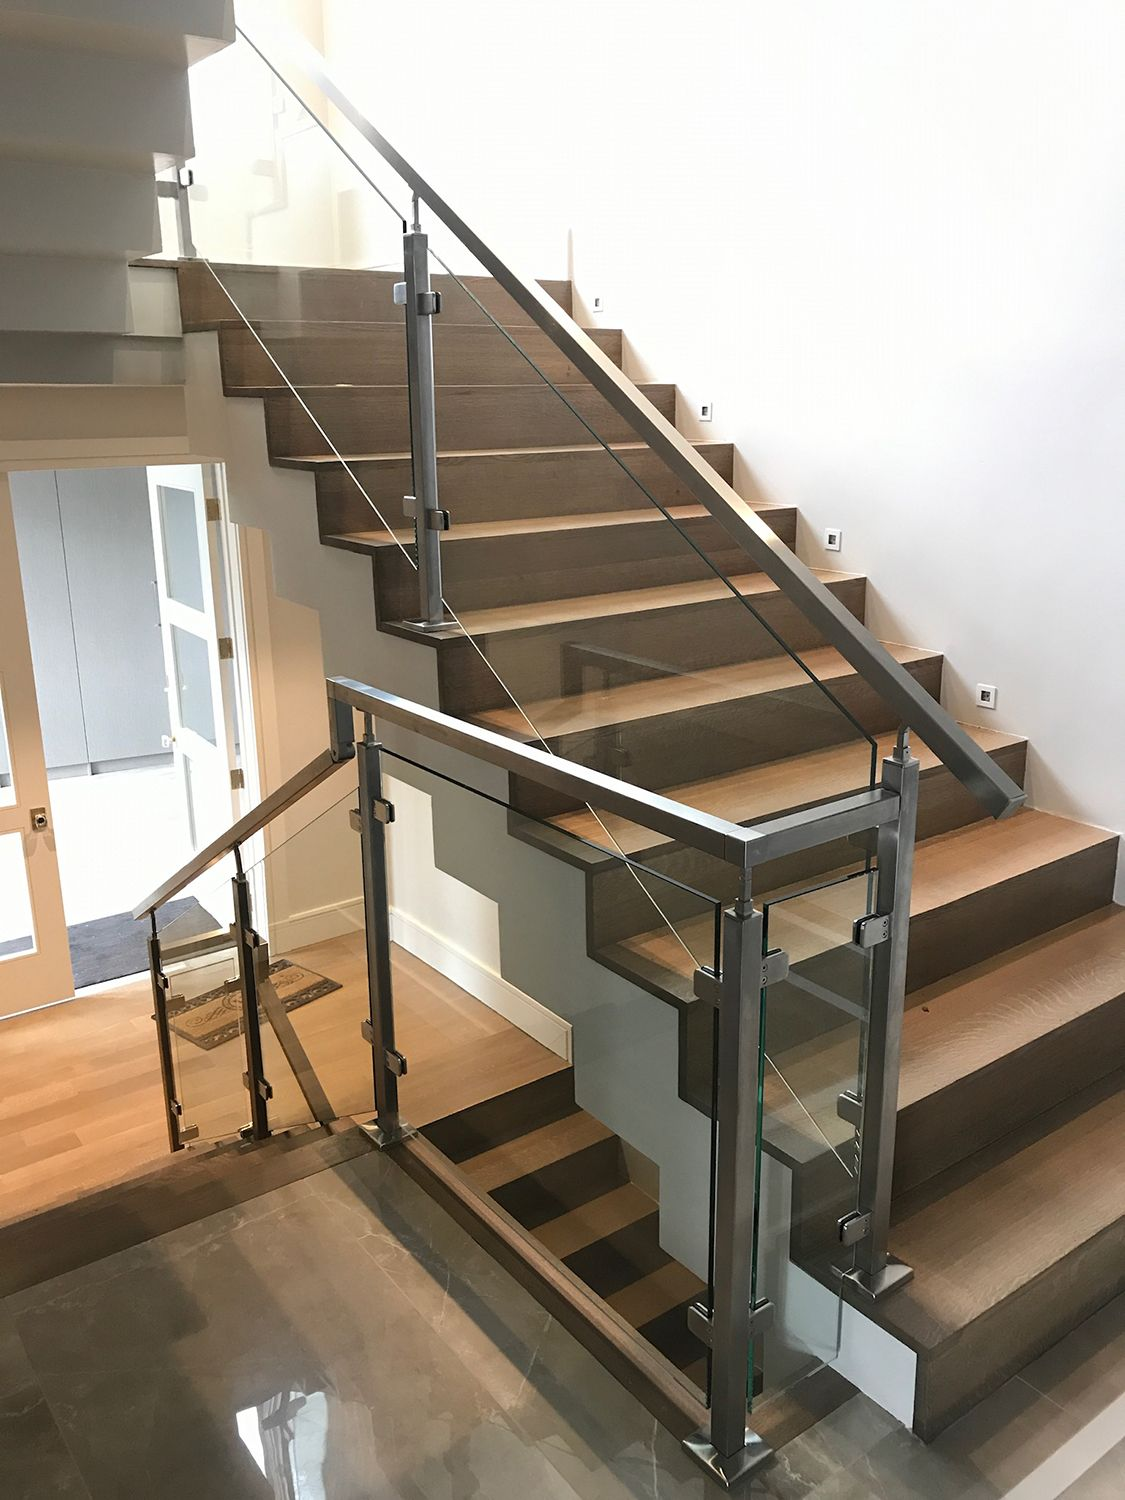 Indital Stainless Steel Square Newel Post With Glass Clamps   Stainless Steel Staircase Railing With Glass   Infill   Custom Glass   Indoor   Panel   Modern